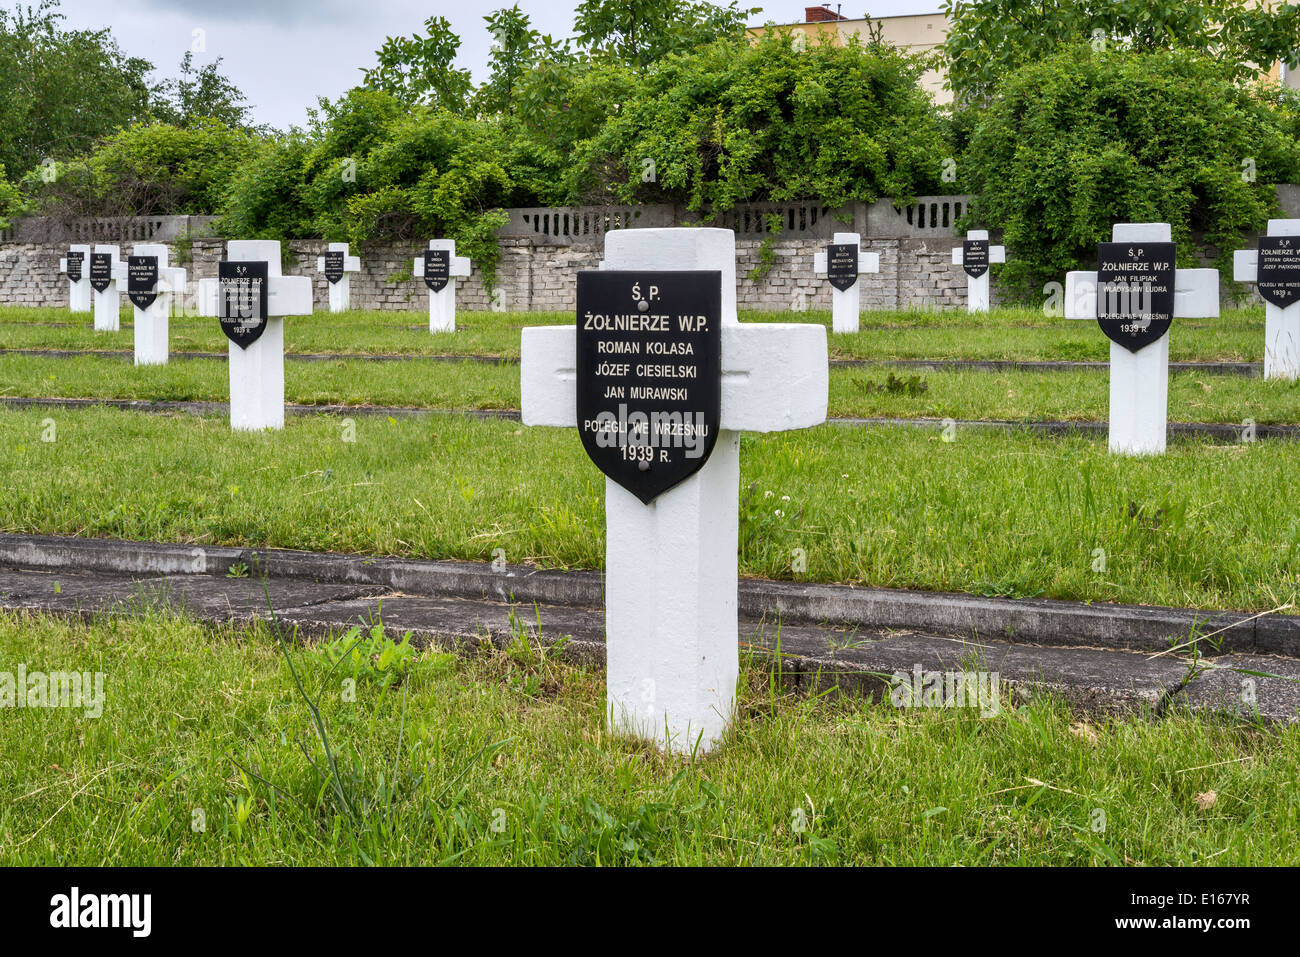 Cemetery of 4000 Polish soldiers killed in WW2 Battle of Bzura aka Battle of Kutno in September 1939, Sochaczew, Mazovia, Poland - Stock Image